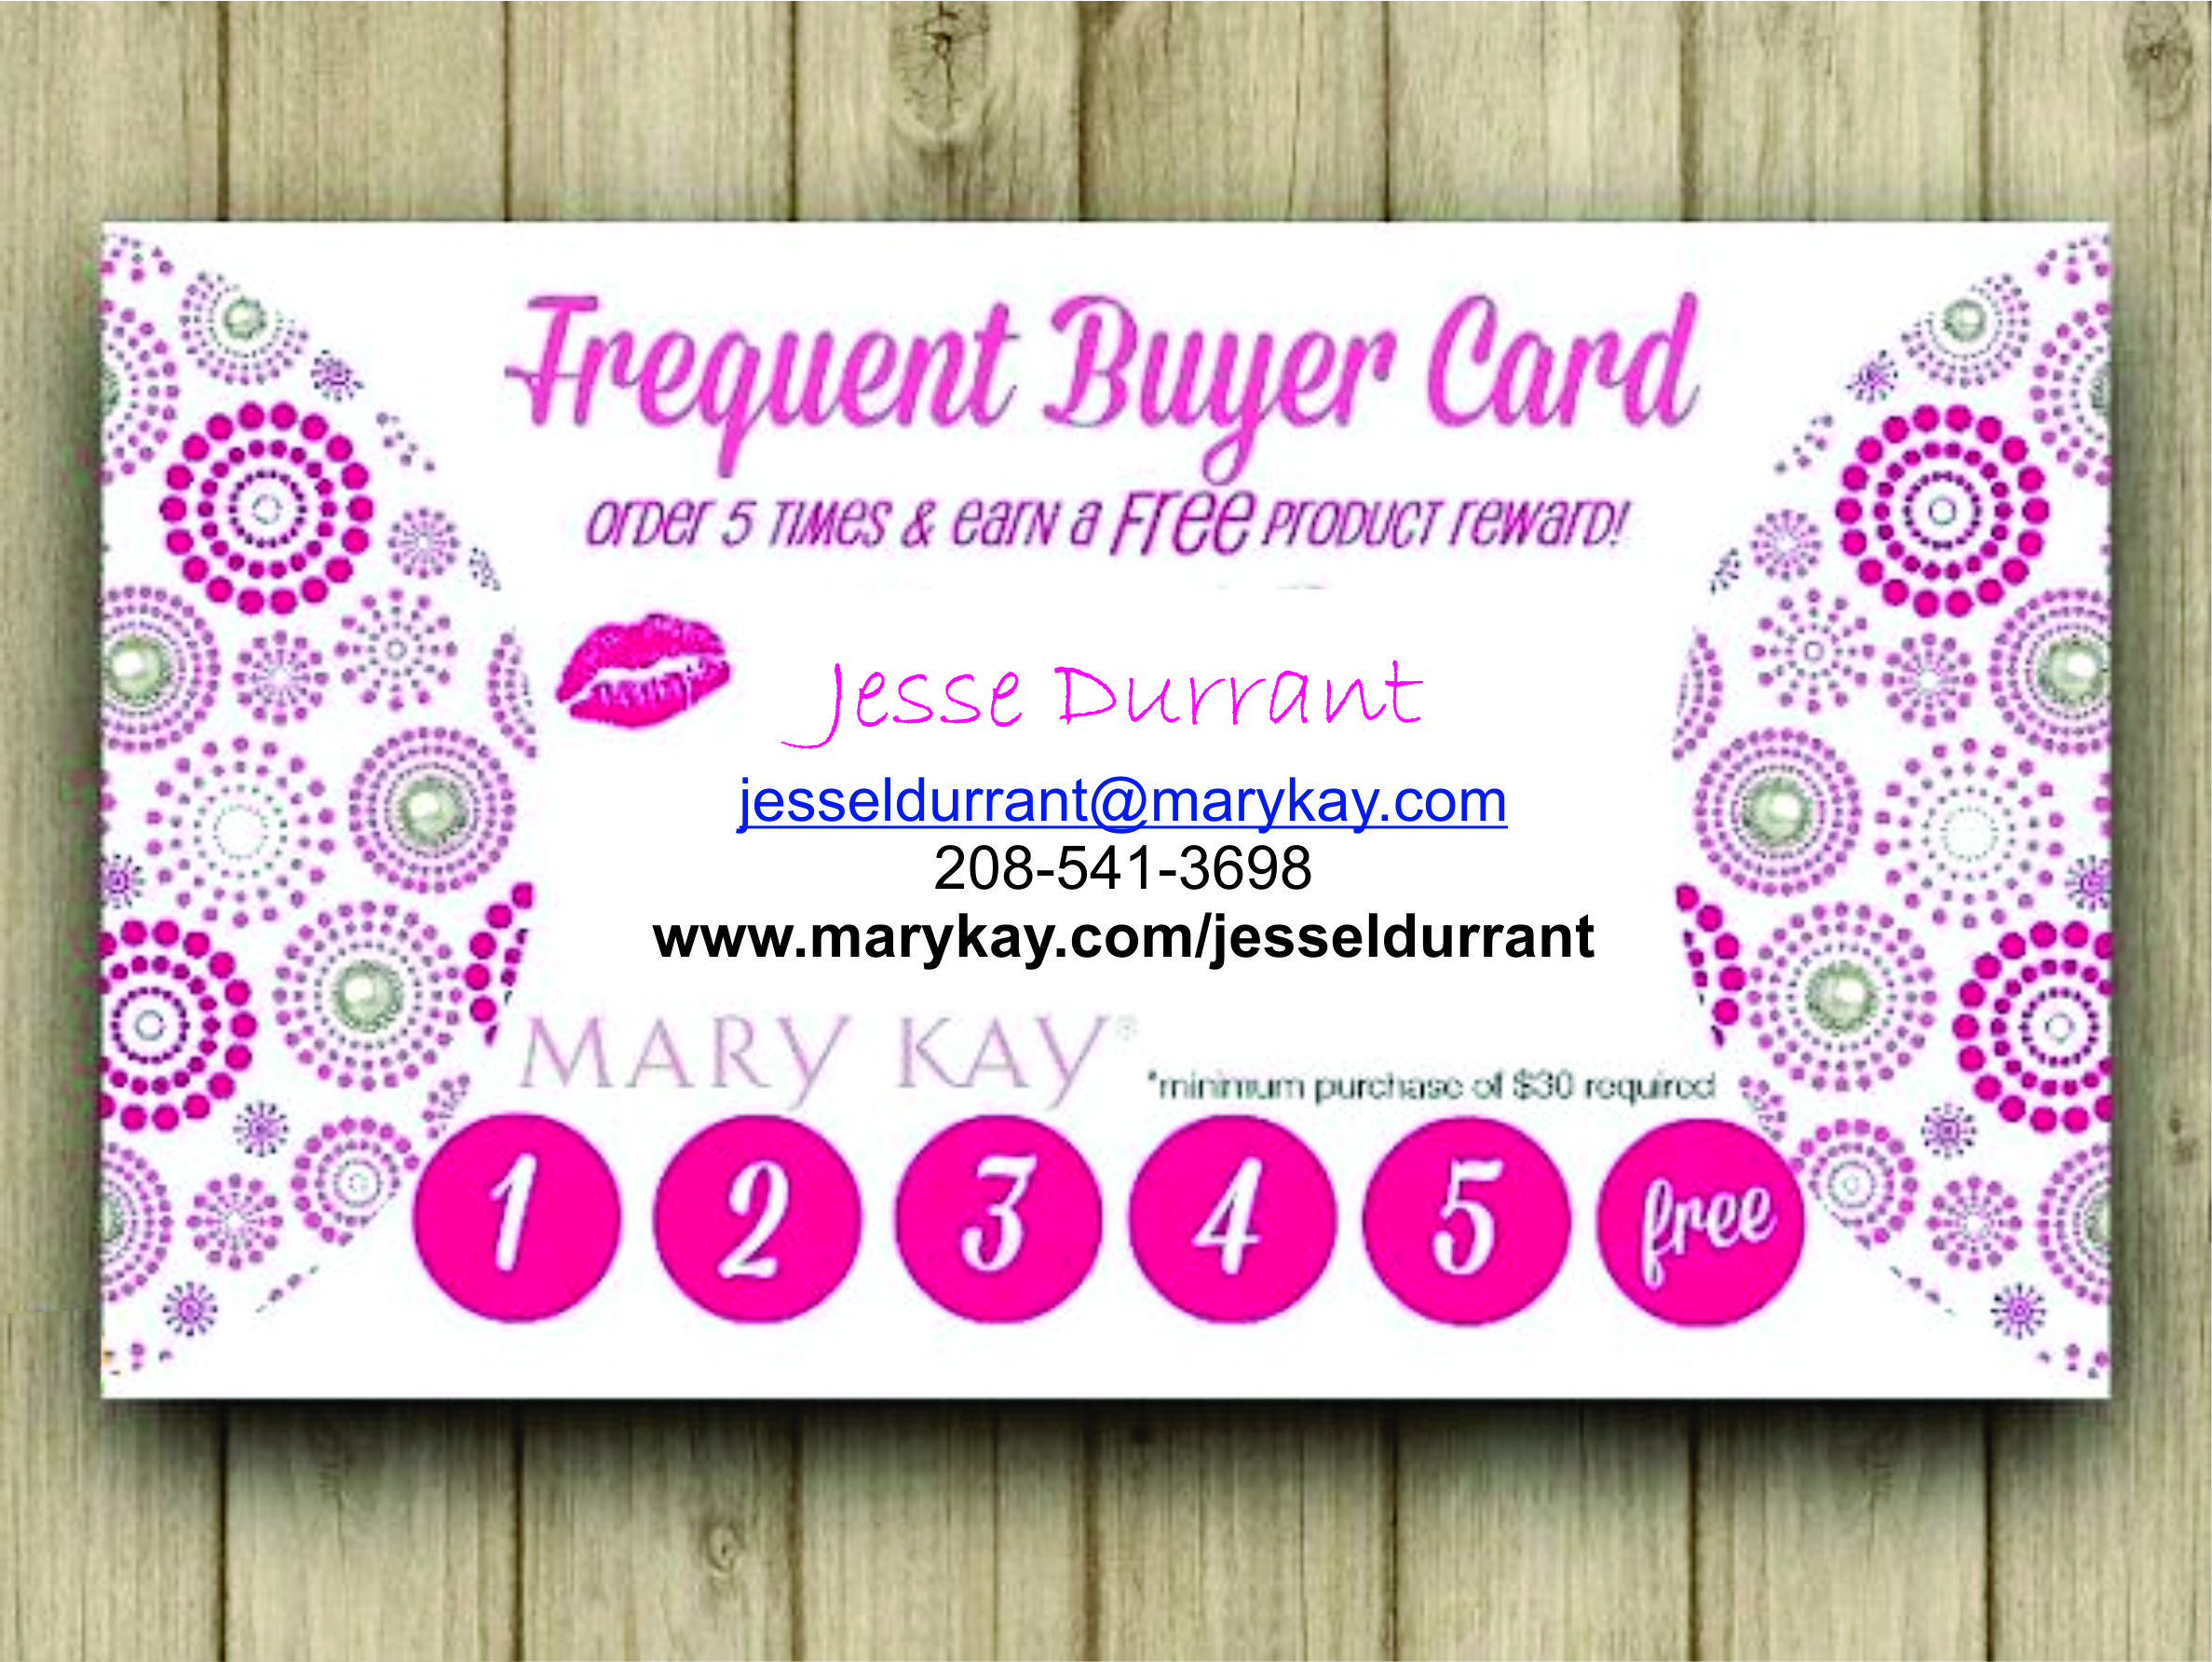 Mary Kay Official Site Mary Kay Marketing Mary Kay Business Cards Mary Kay Business